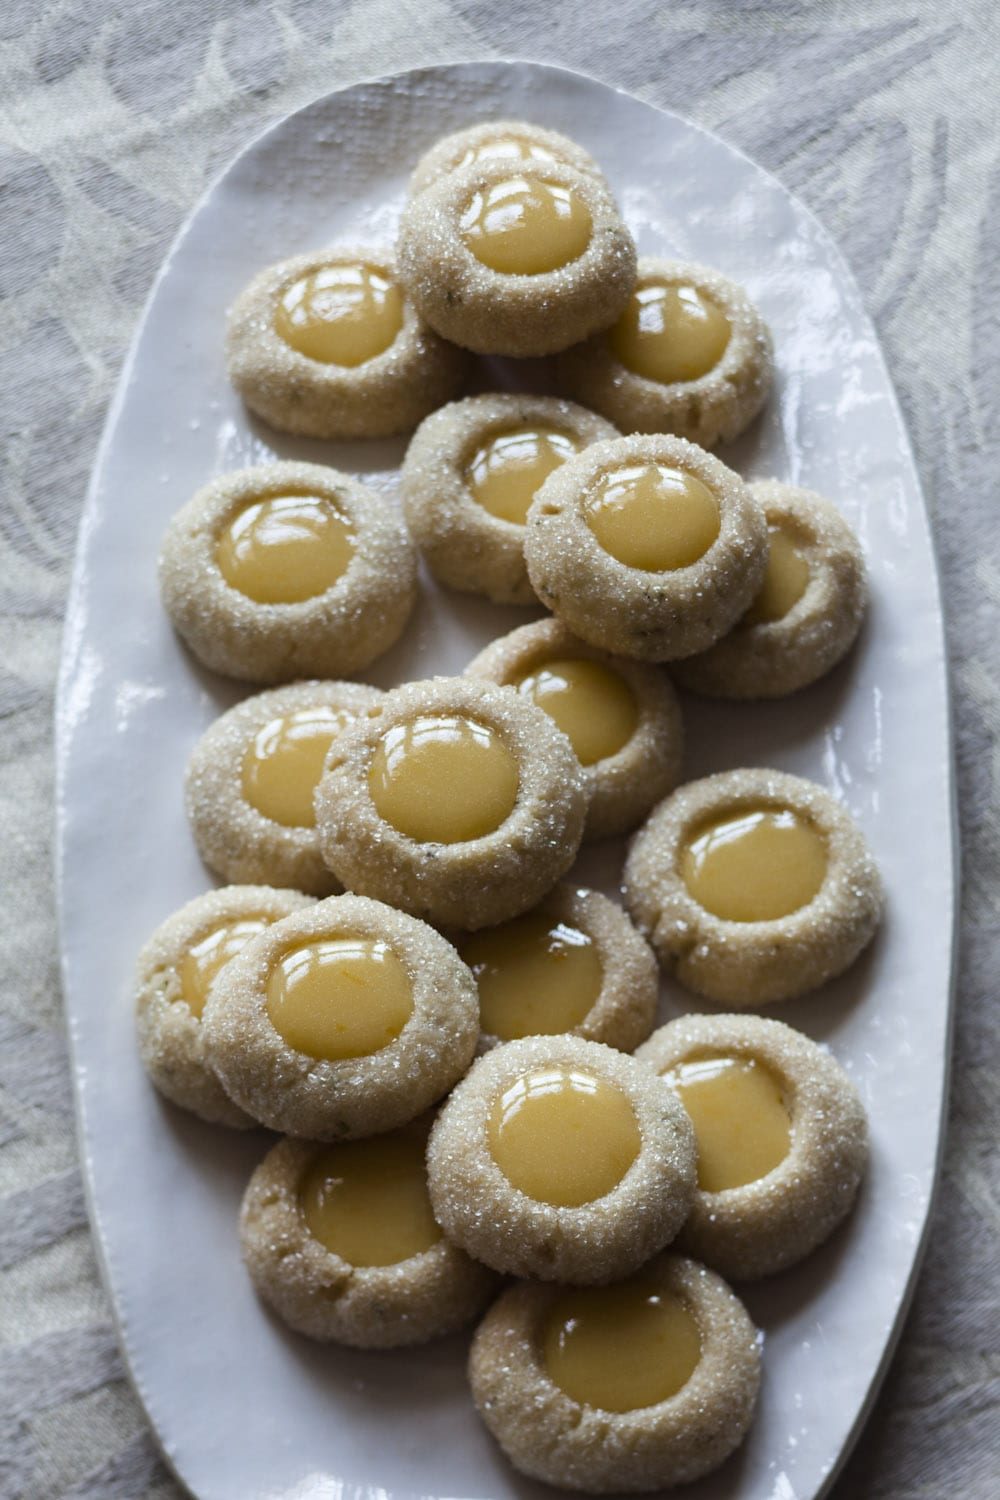 Rosemary Thumbprints With Clementine Curd And The Day I Went To